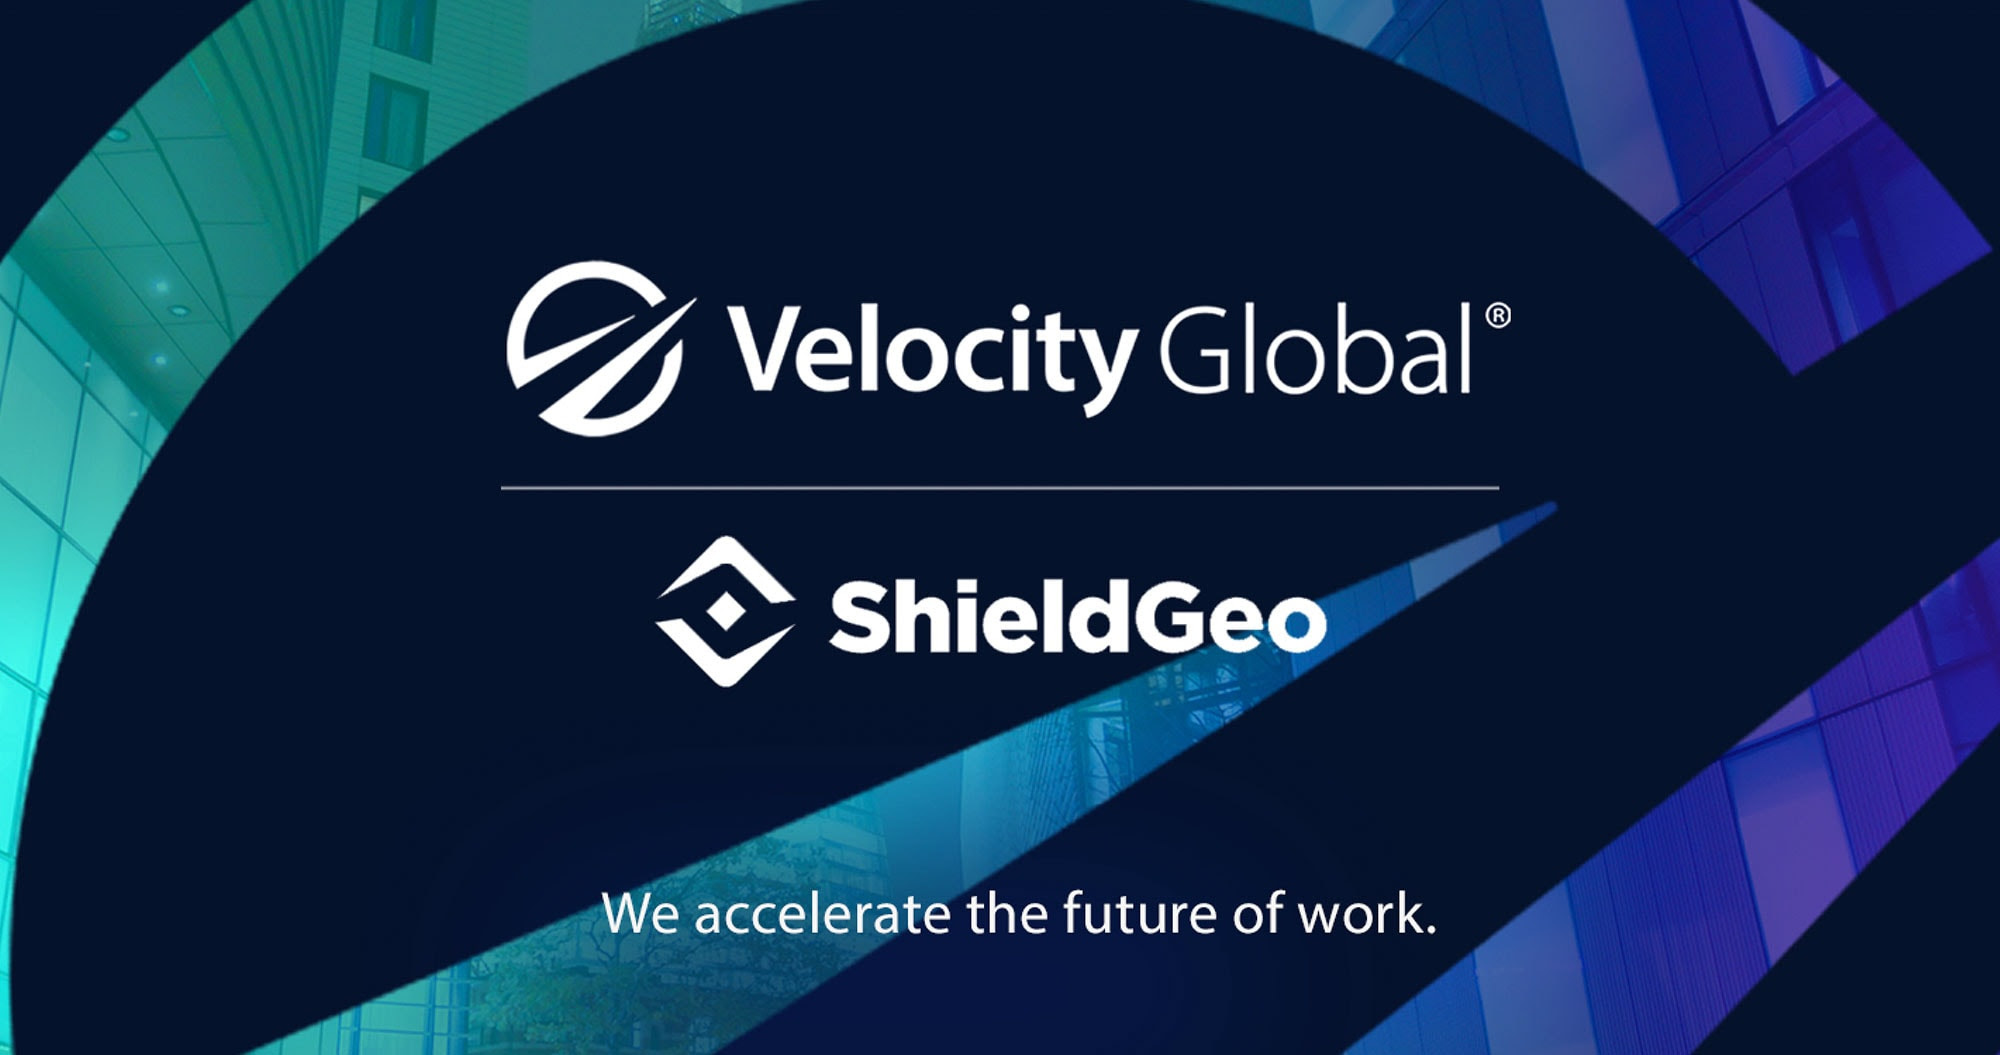 Velocity Global acquires Shield GEO